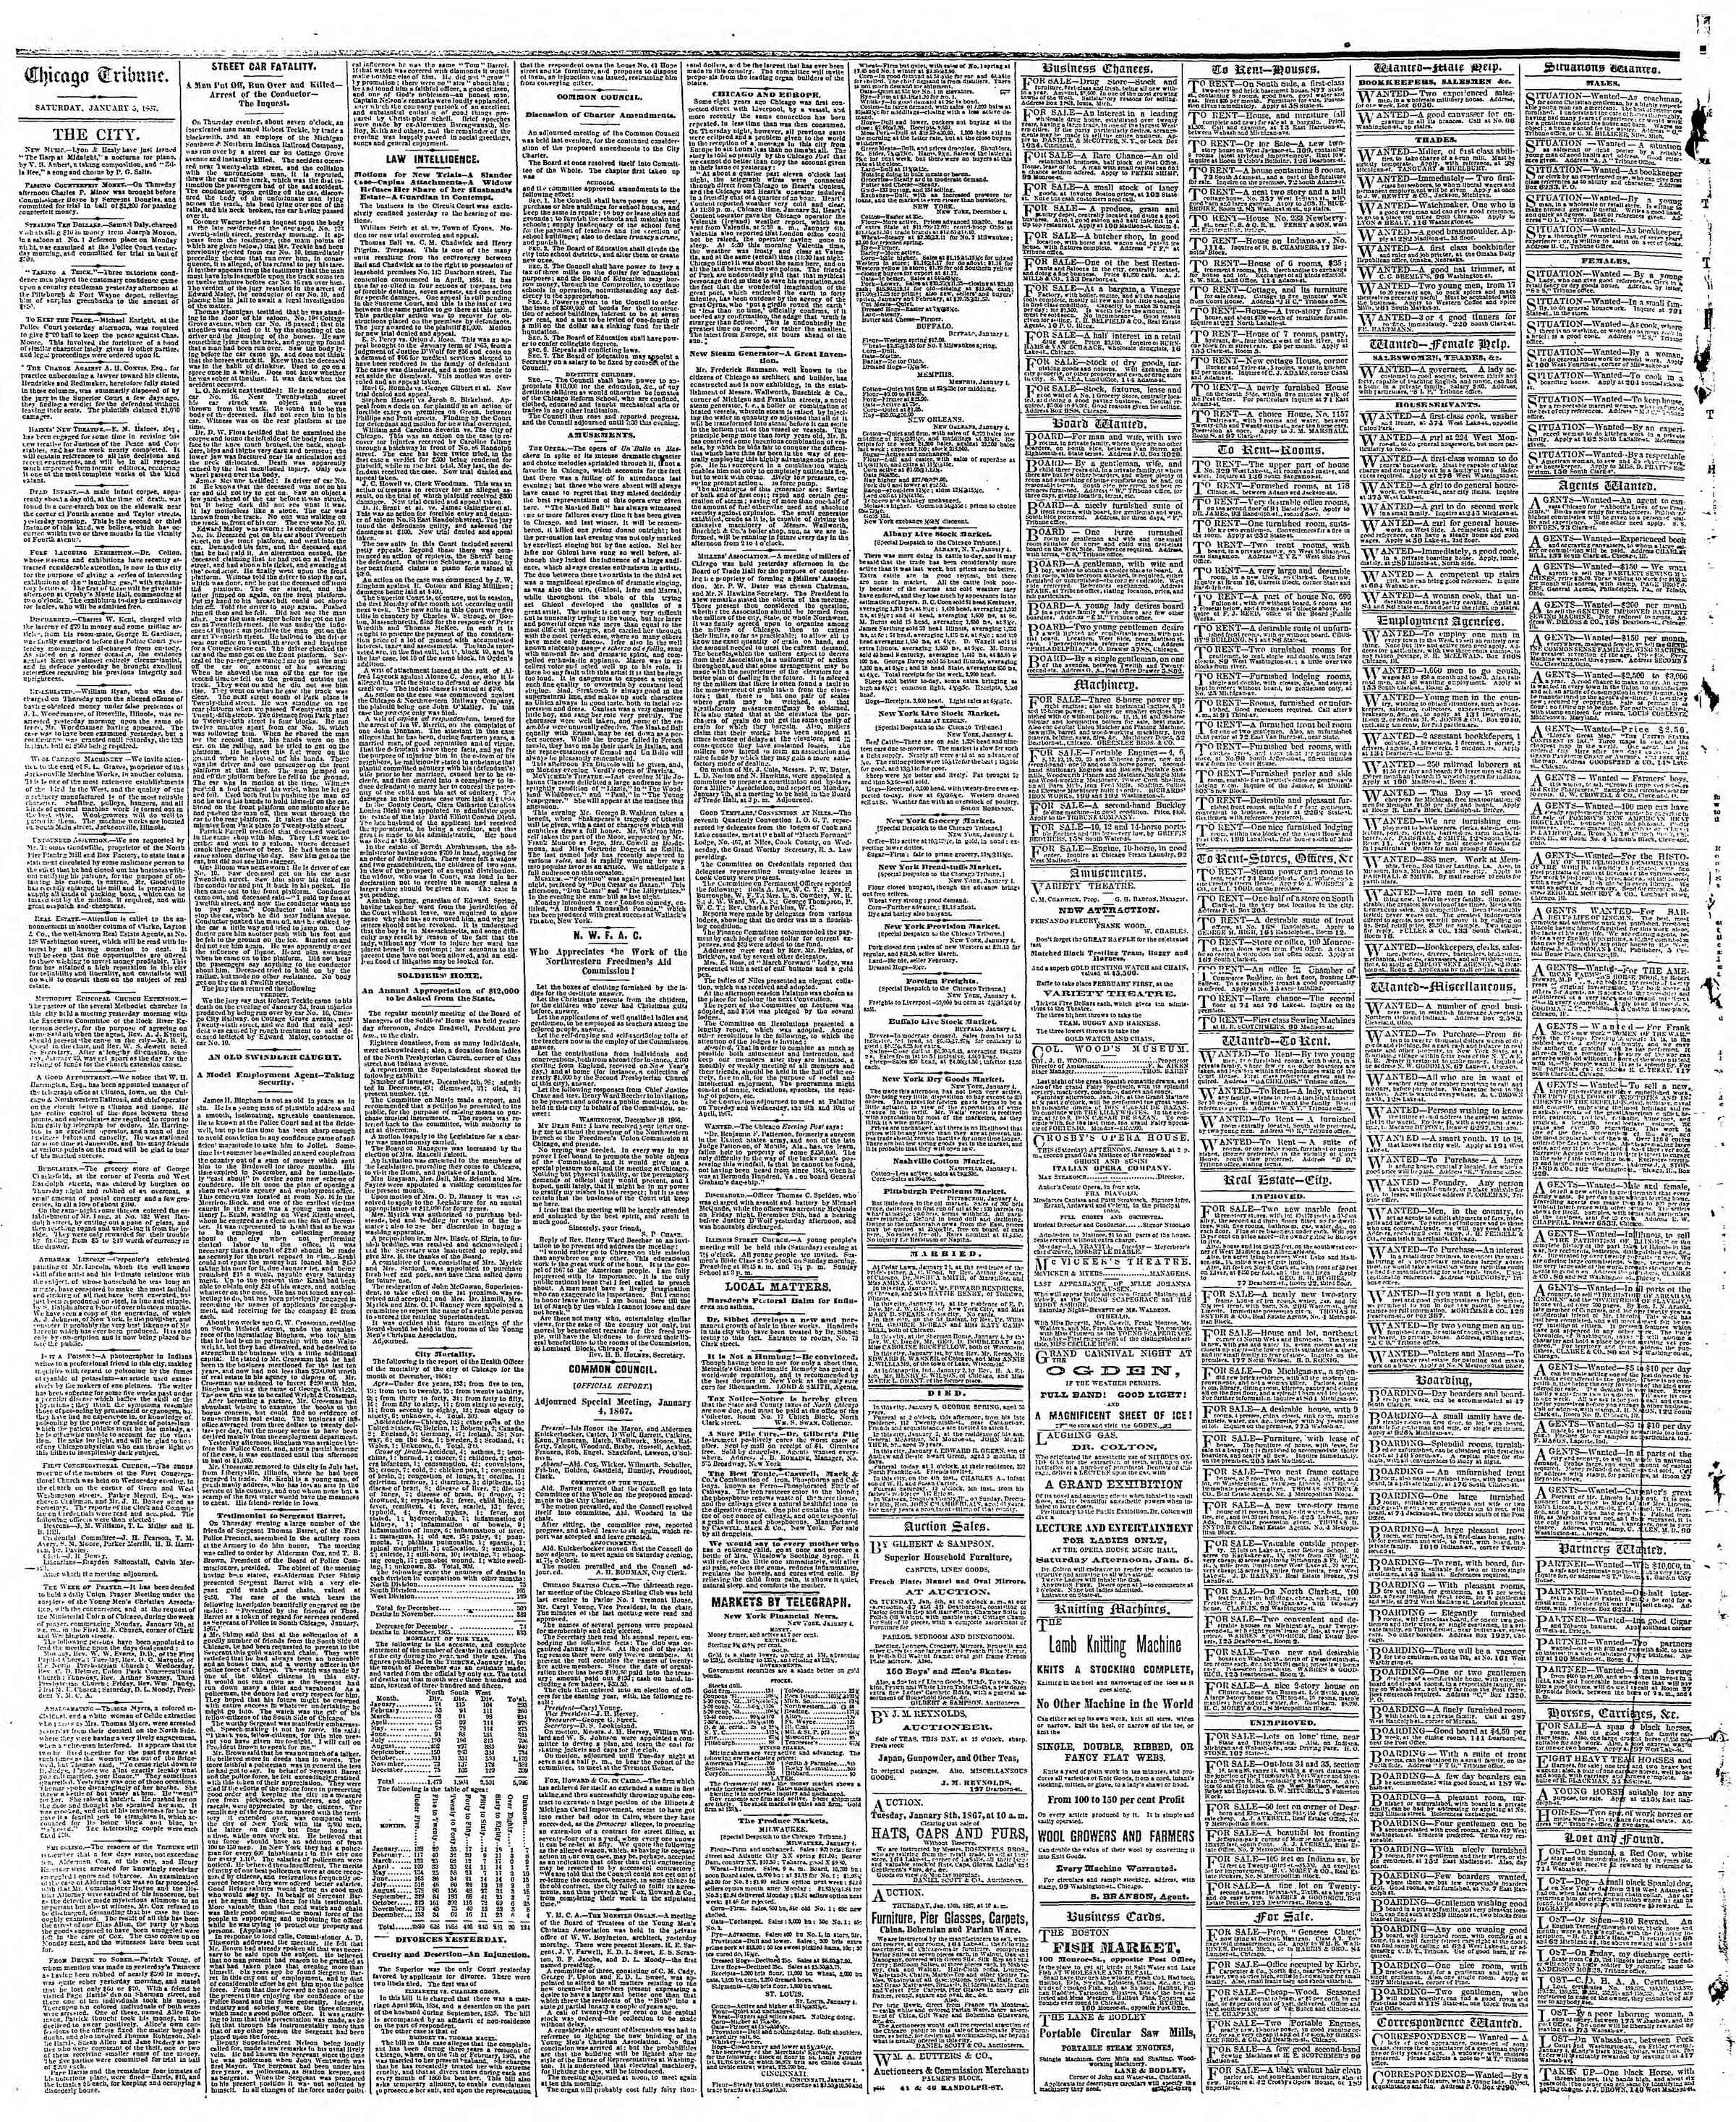 Newspaper of The Chicago Tribune dated January 5, 1867 Page 4